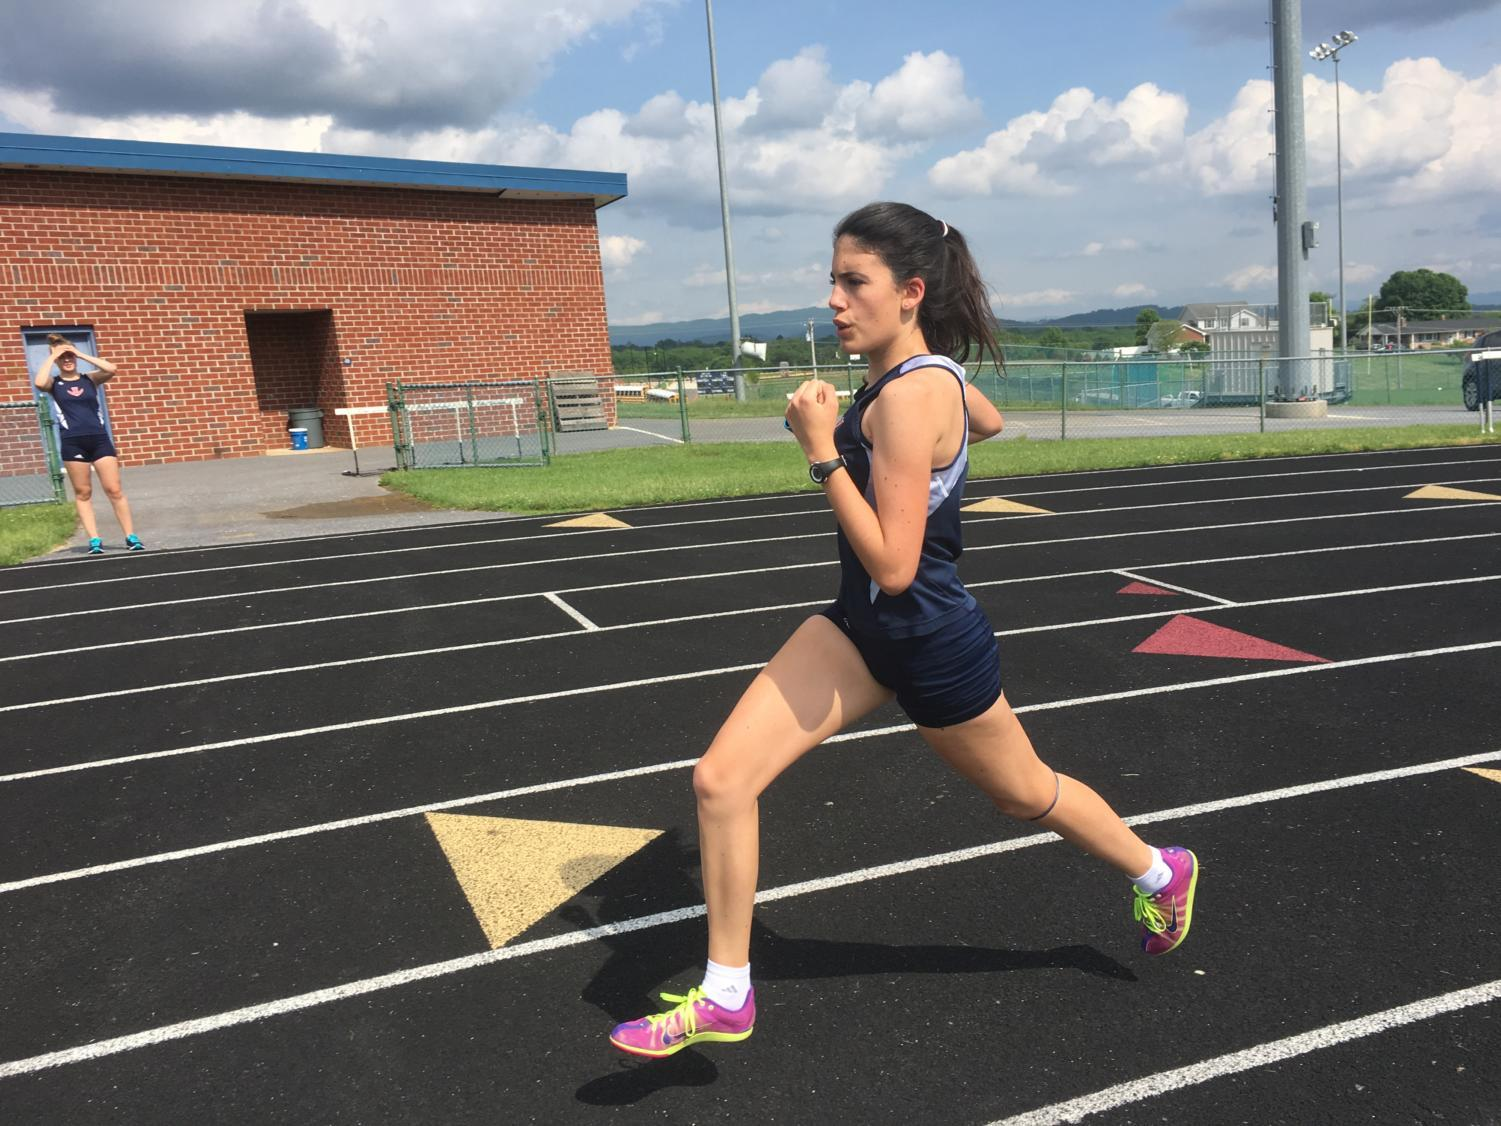 5D West Regional Track and Field Championship marks end of runners' seasons